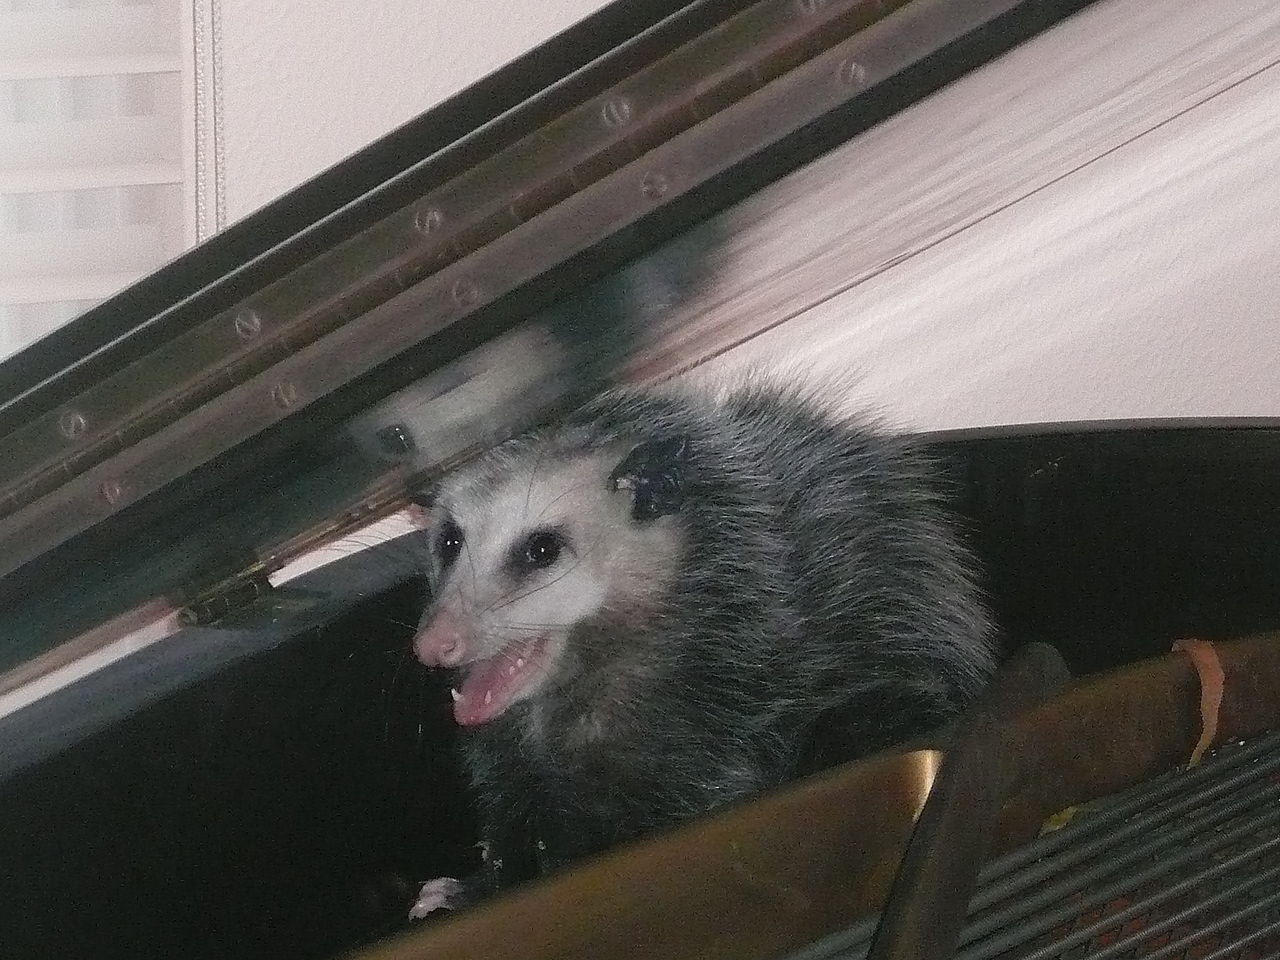 An opossum discovered in a baby grand piano (Photo | Public Domain)